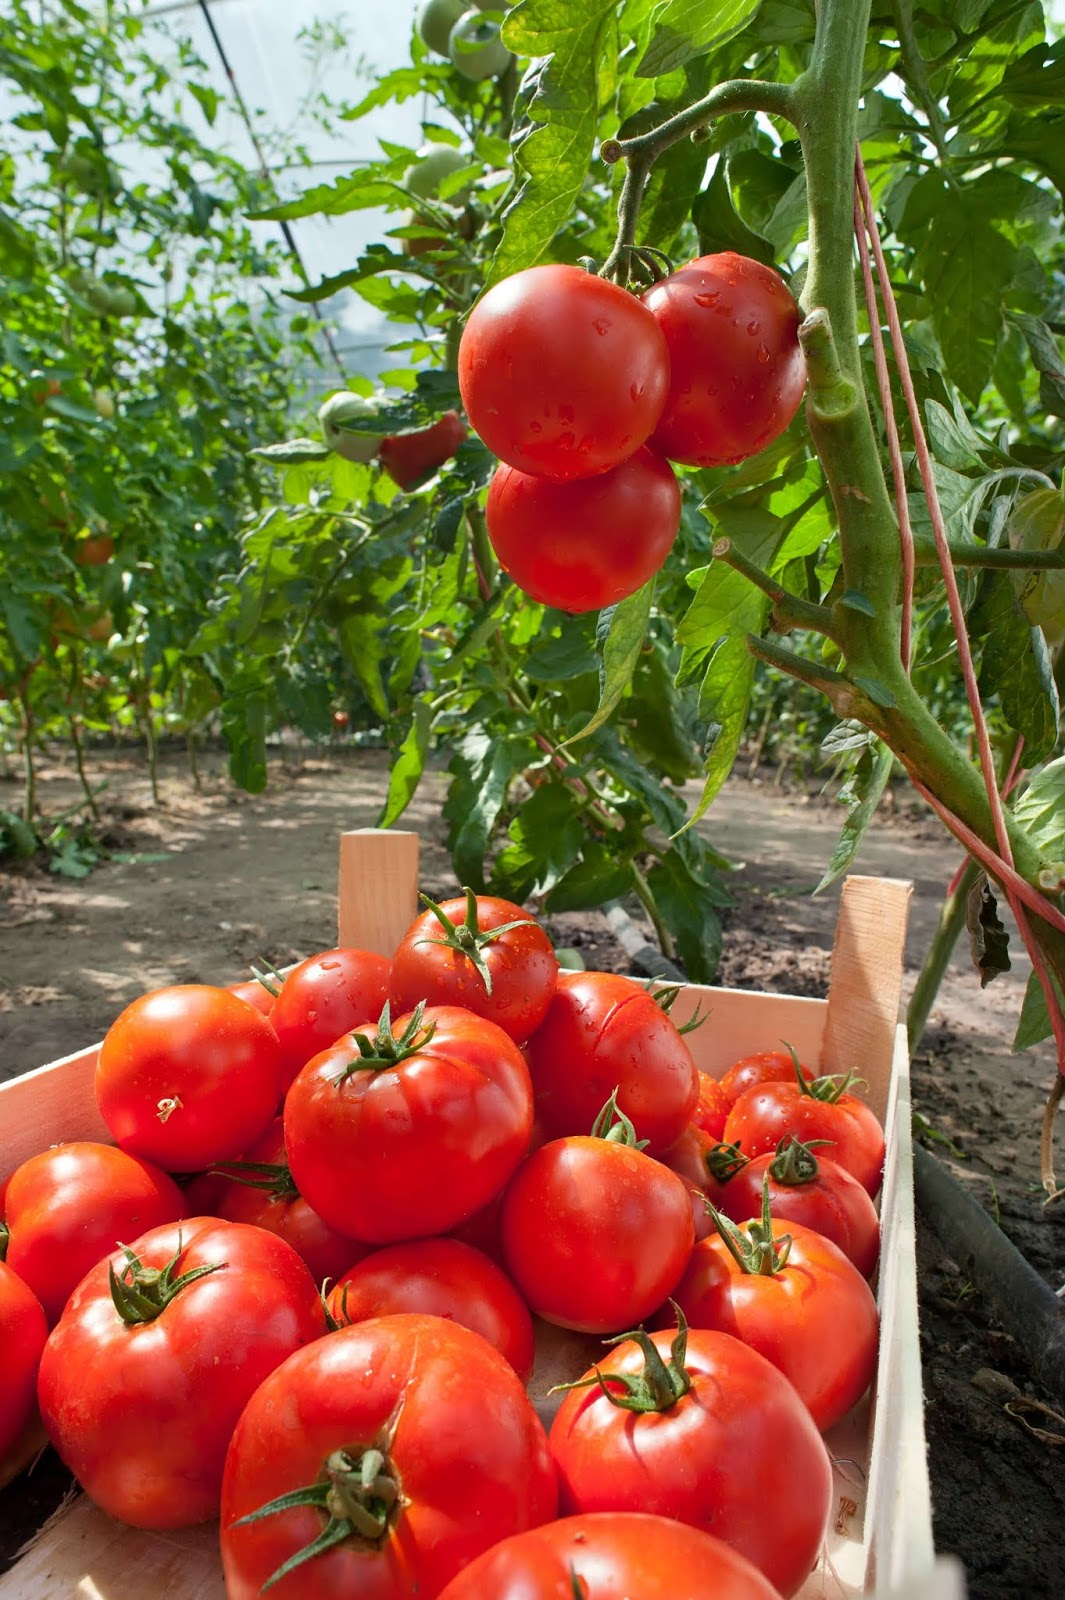 Tomatoes on a Farm